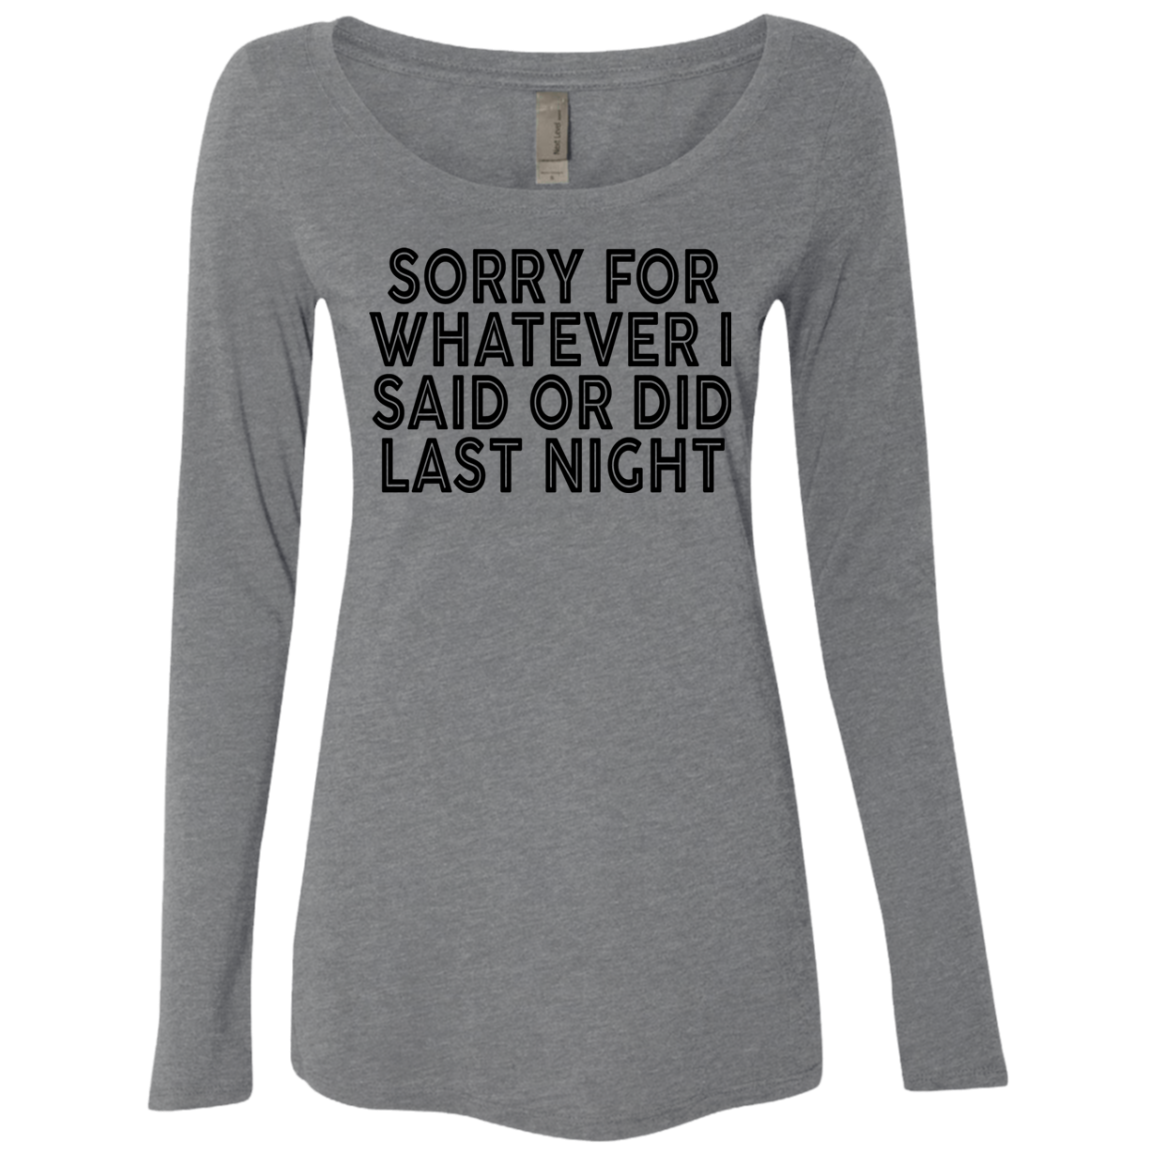 Sorry For Whatever I Said Or Did Last Night Women's Long Sleeve Tee